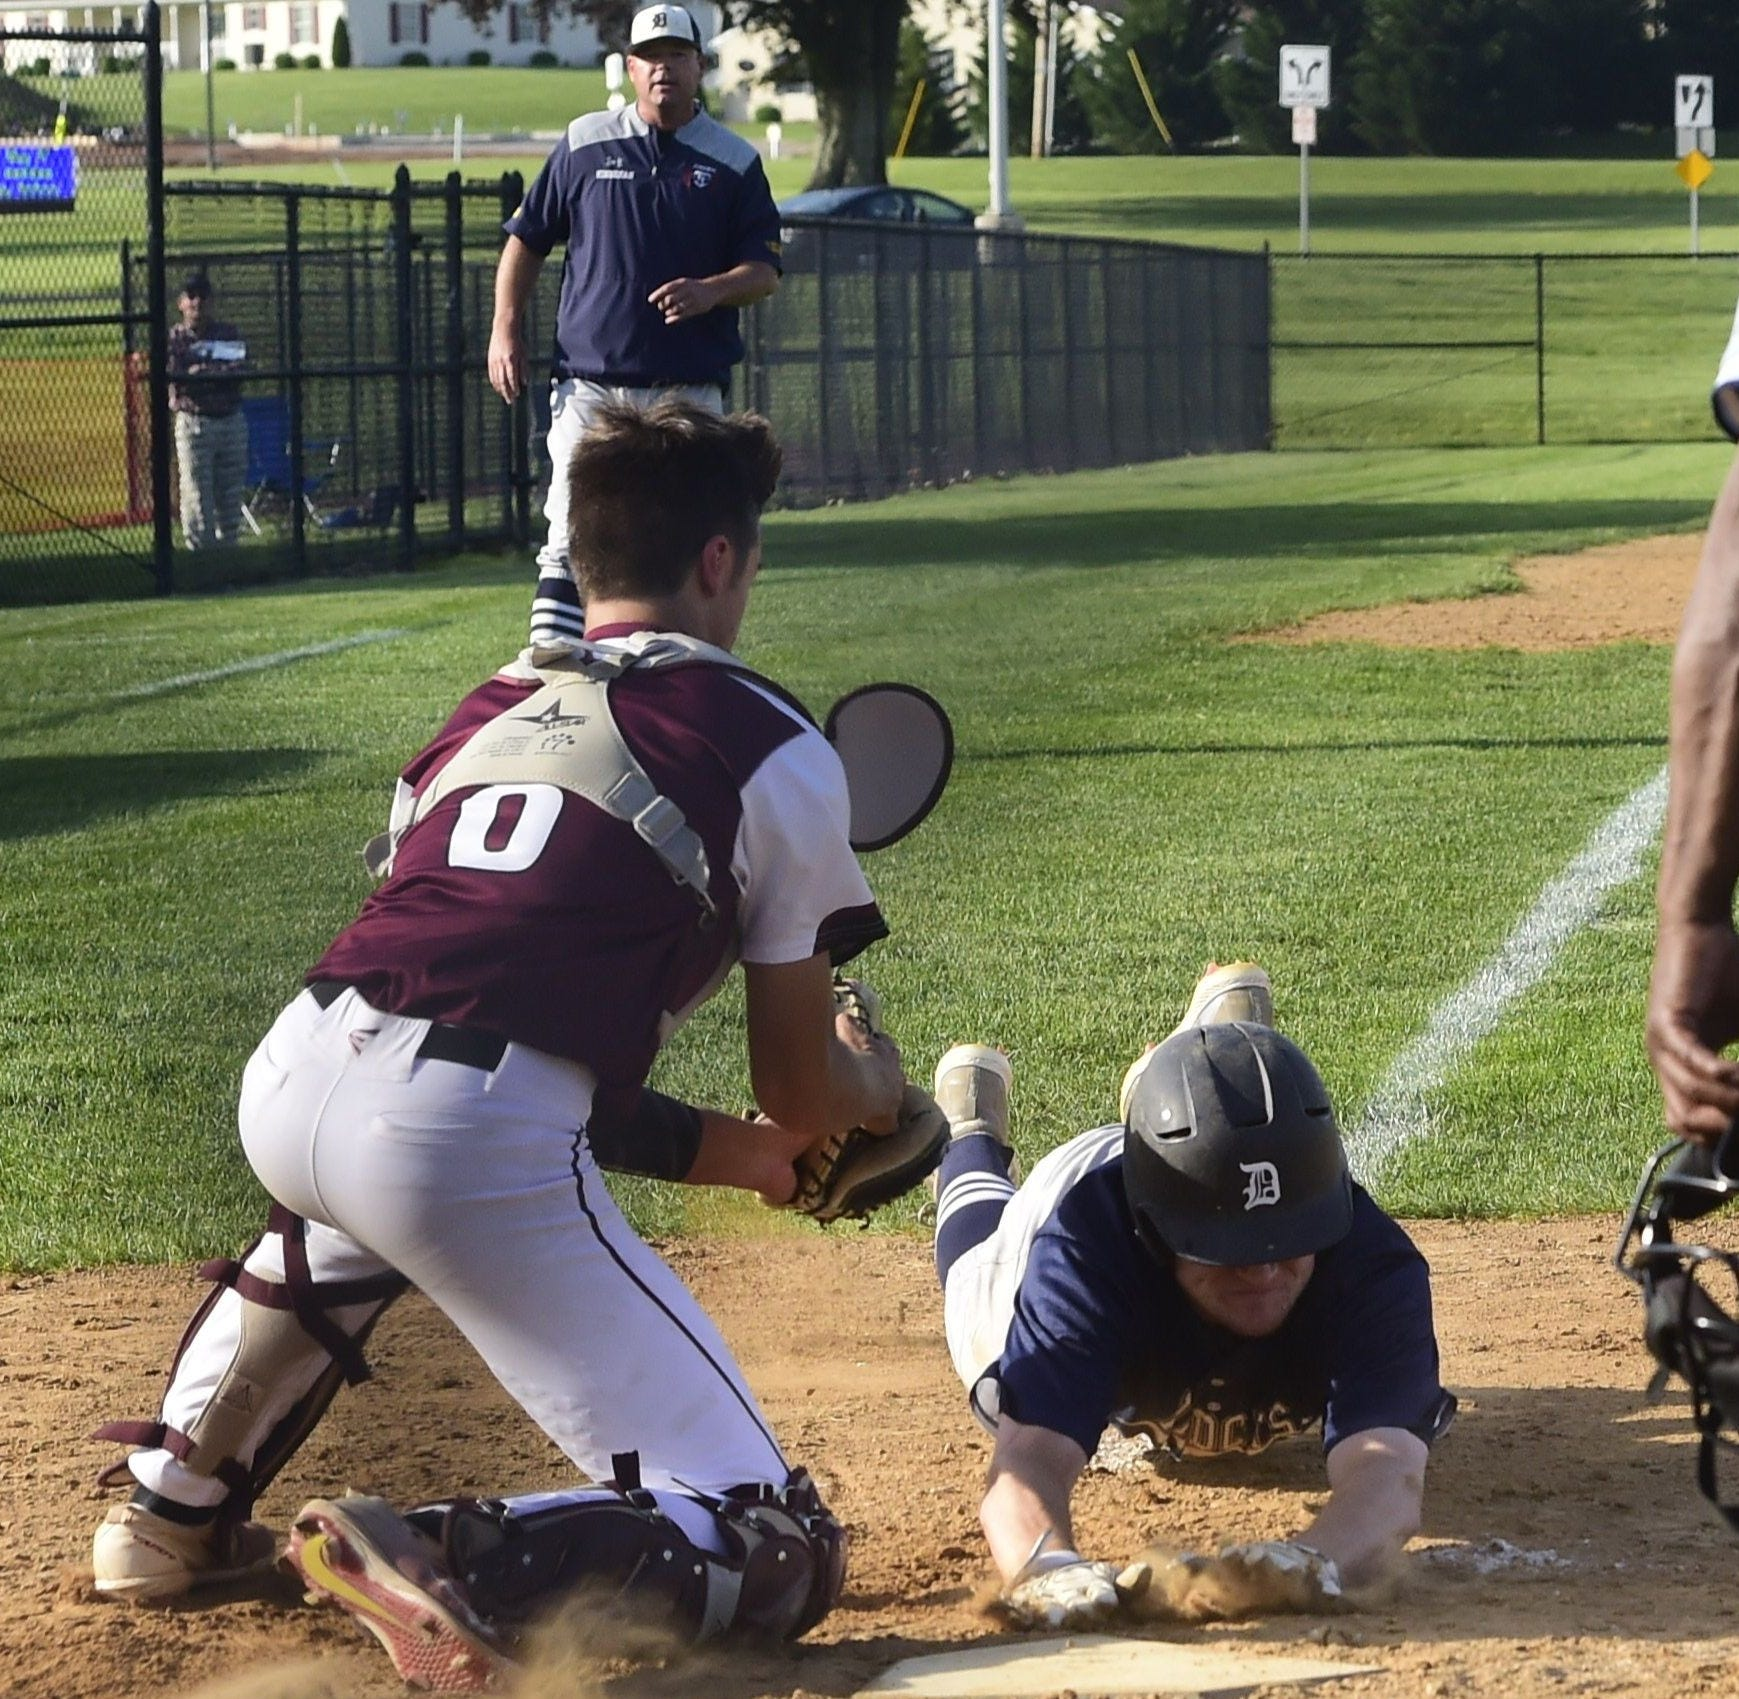 Dallastown center fielder scorching at the plate as team enters district playoffs on fire